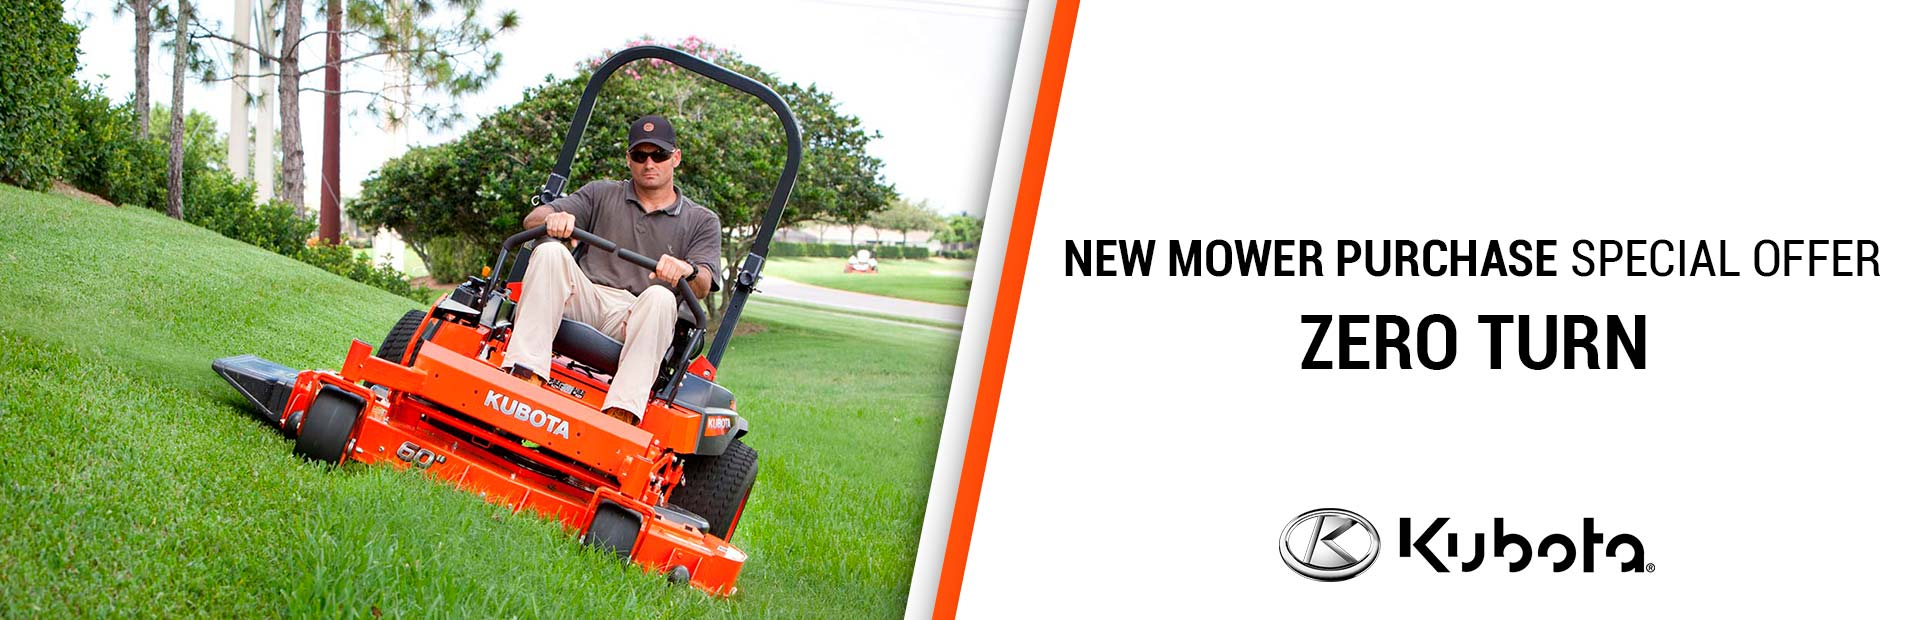 NEW MOWER PURCHASE SPECIAL OFFERS-ZERO TURN